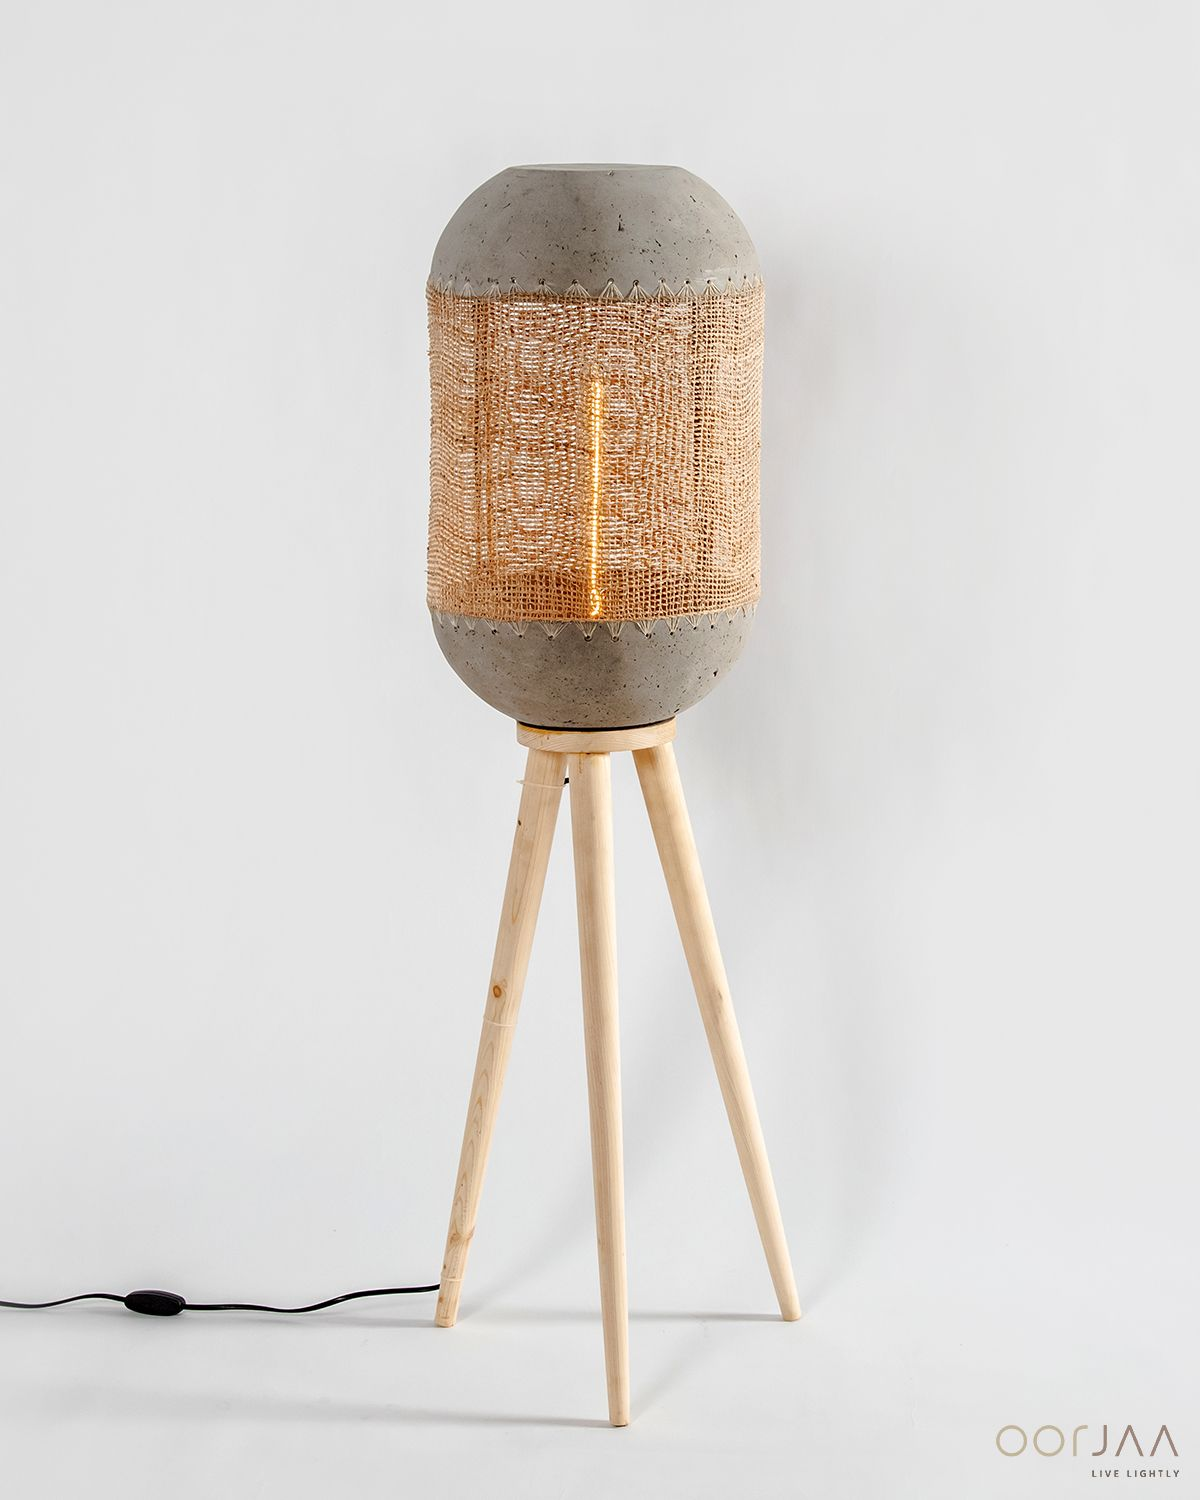 Banana Fibre Mesh Floor Lamp Gif Let this symbol of natural beauty brighten up your space, at home, office or hospitality. Visit our store today to explore this and more! . . . .